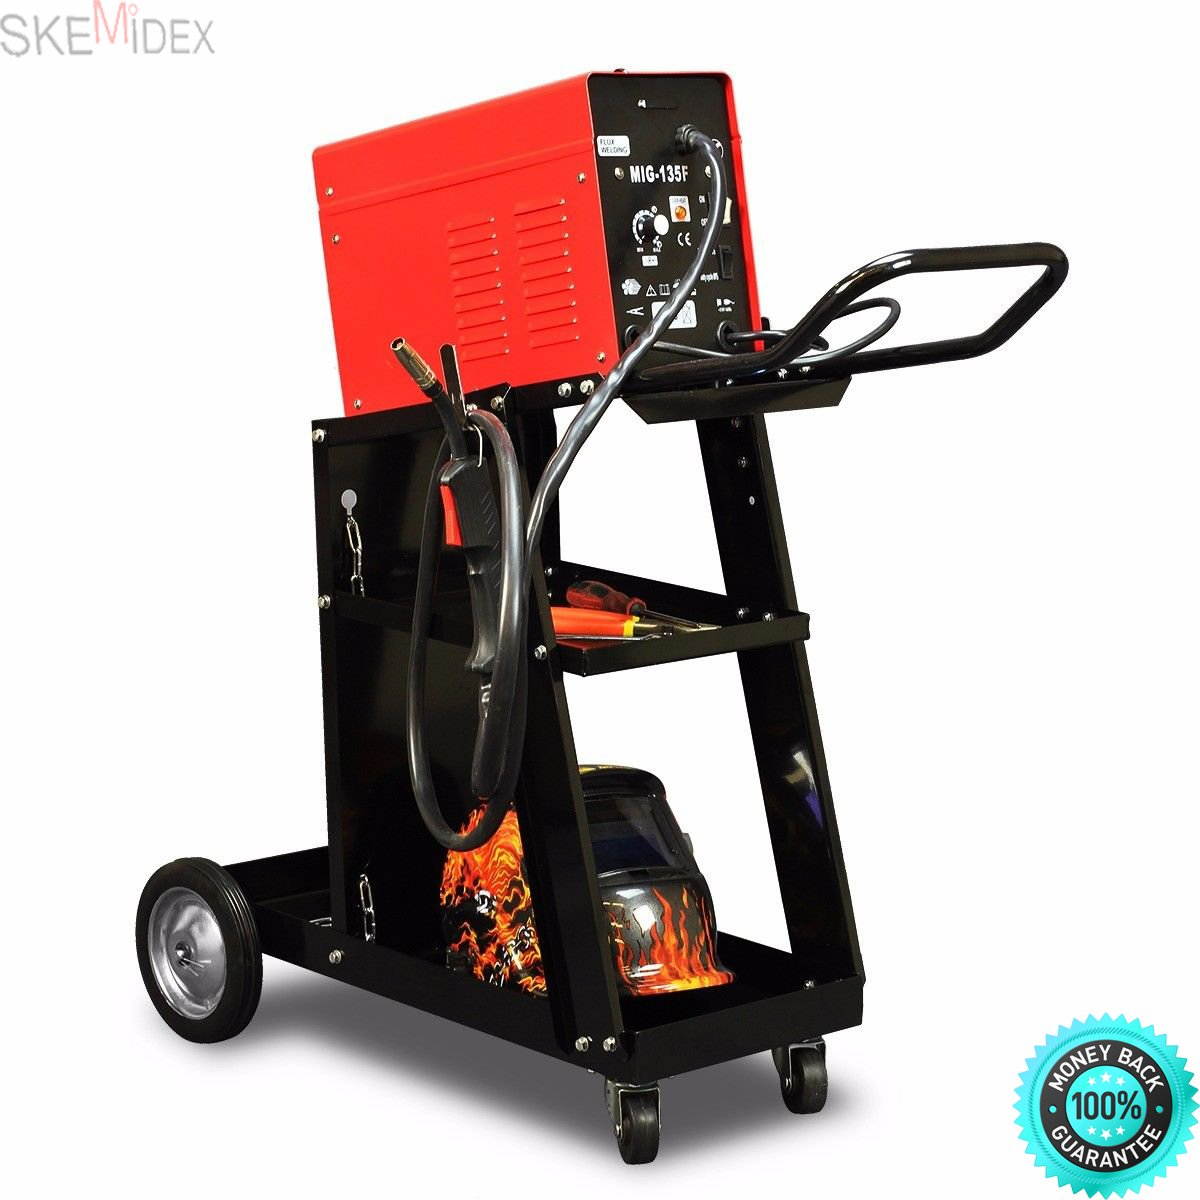 SKEMIDEX---MIG TIG ARC Welder Welding Cart Universal Storage for Tanks & Accessories Wheels And miller welding carts harbor freight welding carts welding cart with drawers lincoln welding cart heavy